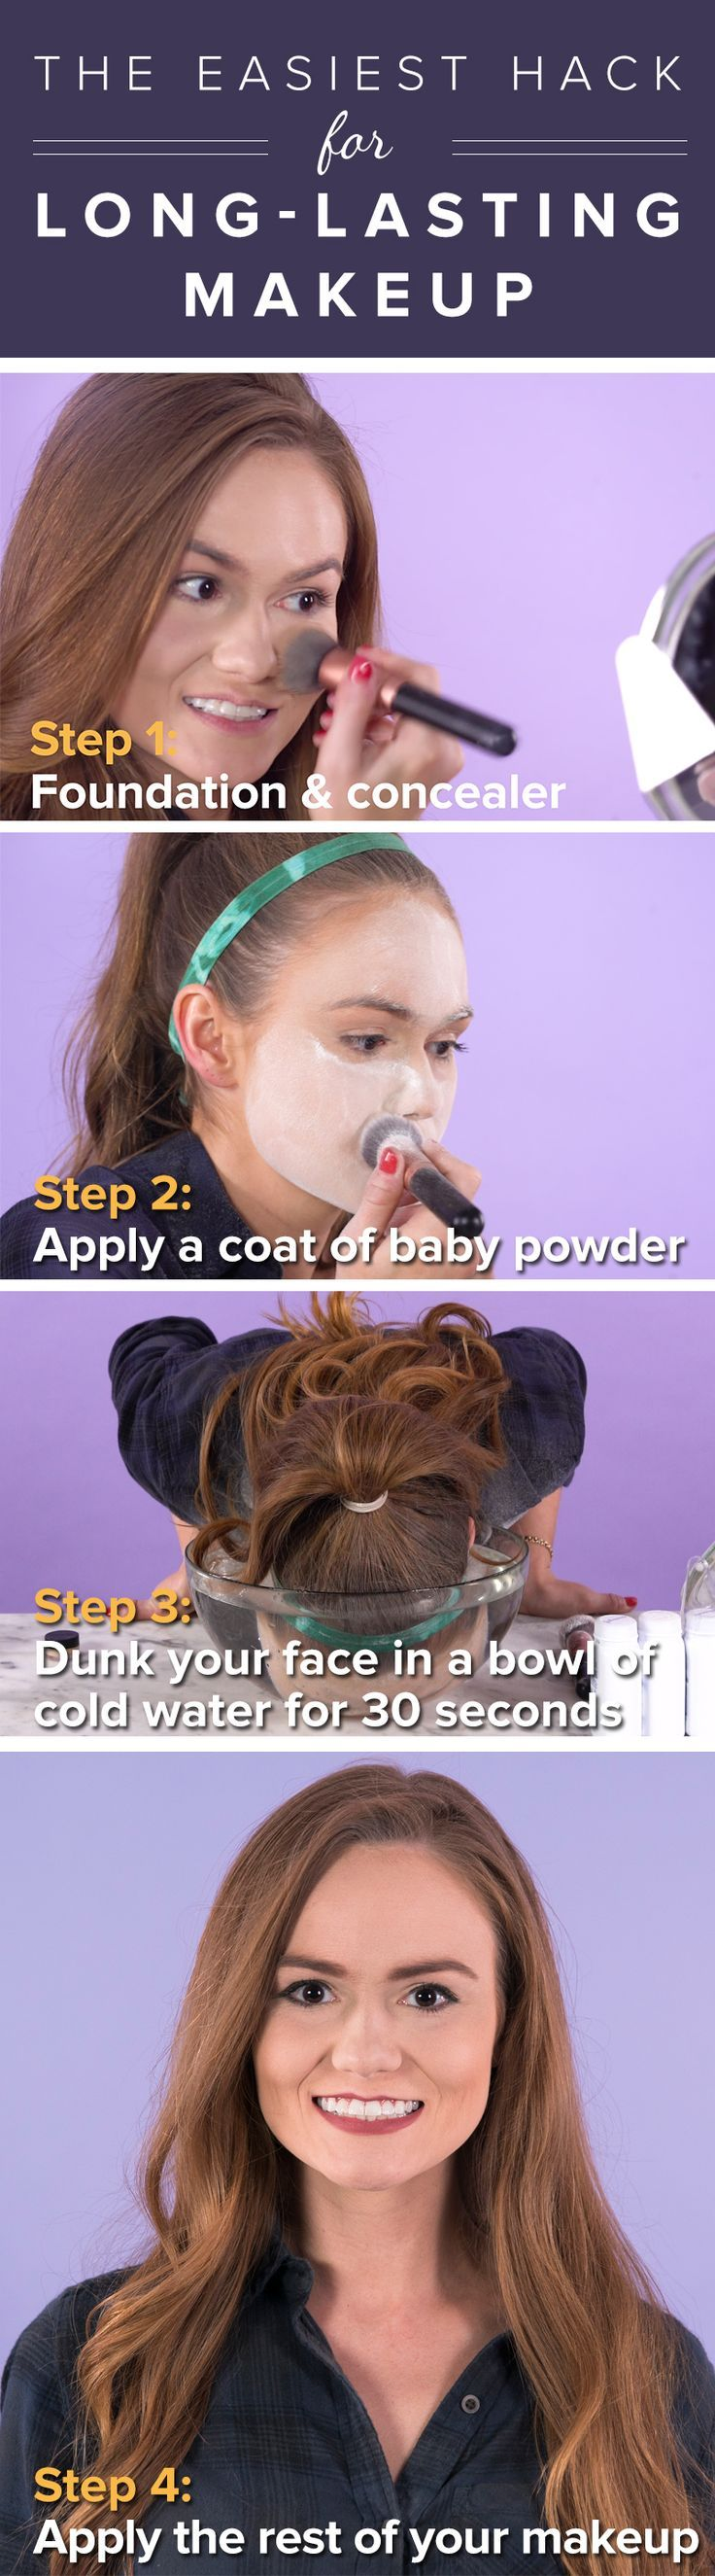 Try these tips to get long-lasting makeup and foundation. All you need is baby powder and cold water. It's so easy!